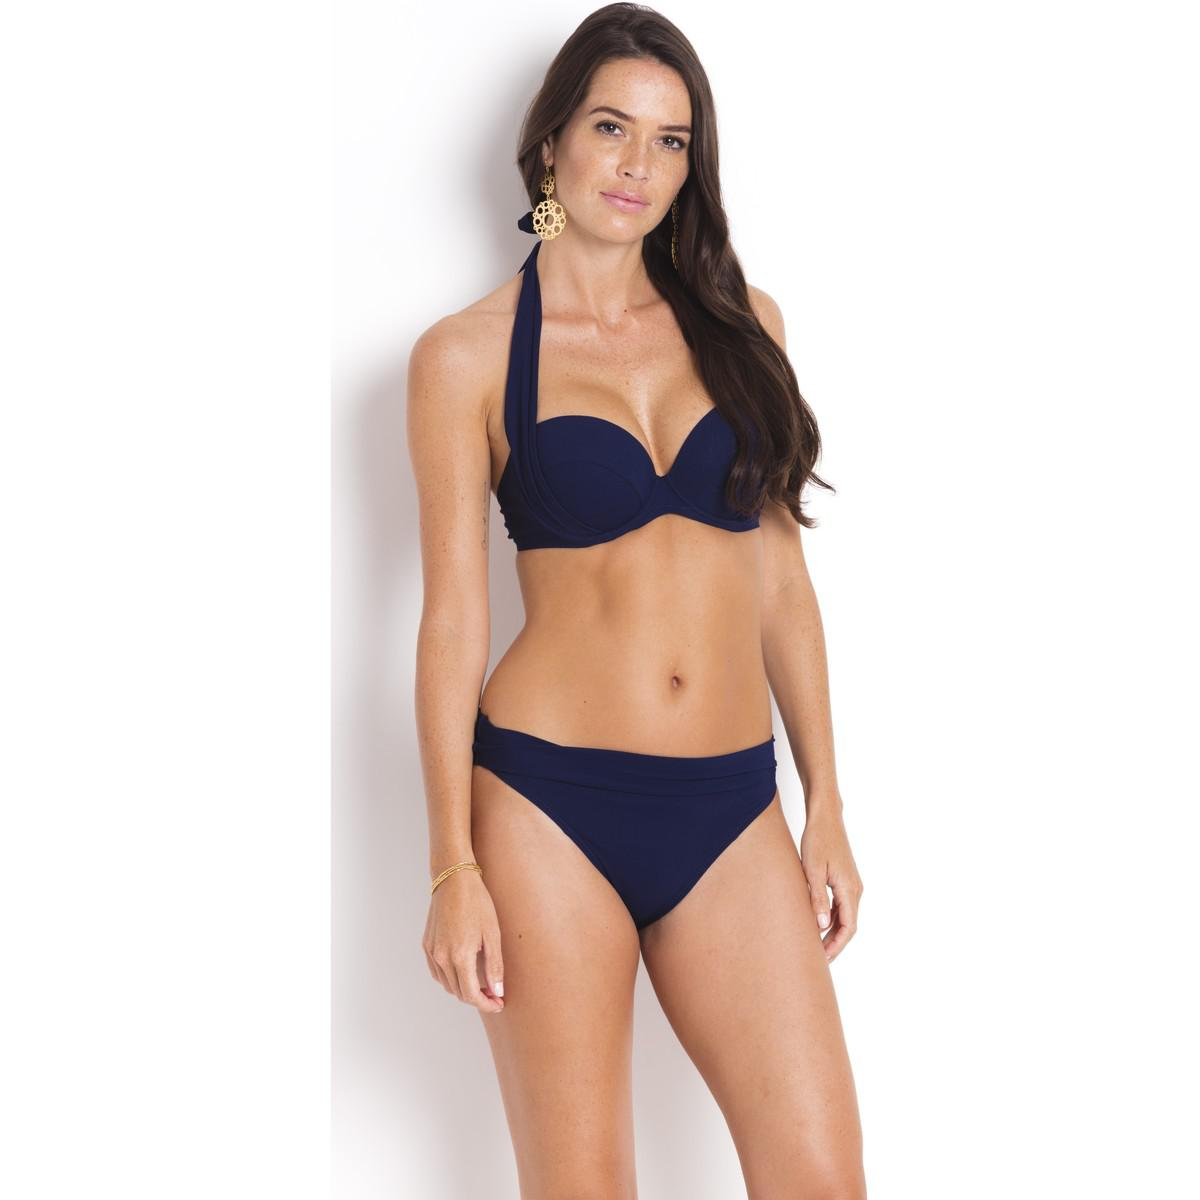 26047f14c416 pain-de -sucre-blue-Bikini-Top-D-cup-With-Balconette-Lisia-Navy-Uni-Life-Womens-In-Blue.jpeg